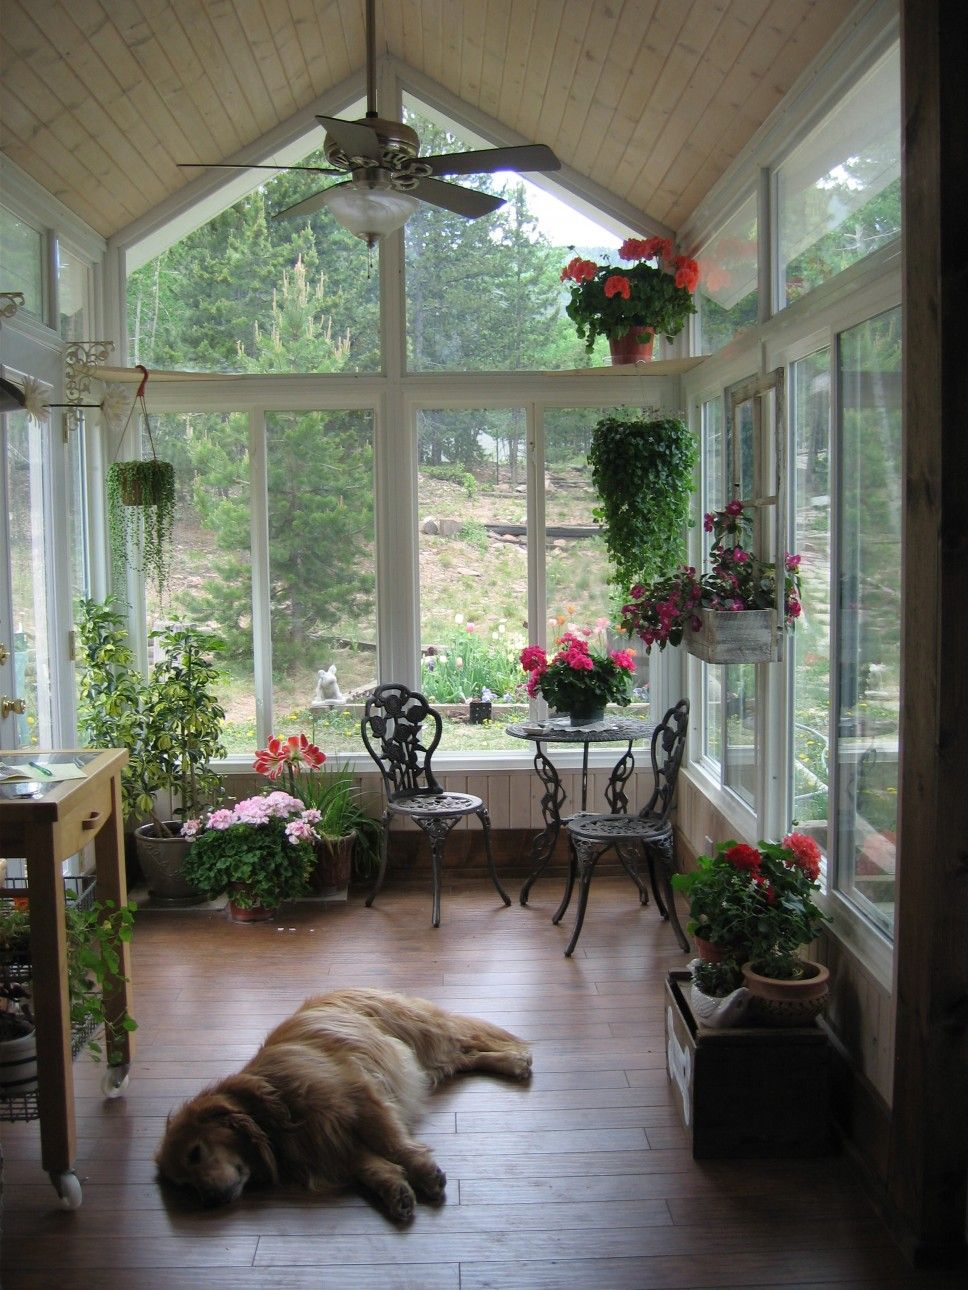 Decoration Luxury Sun Room Decor Ideas With With Brown Ceramic Floor And Green Plant Hanging Decor For Inspir Small Sunroom Sunroom Decorating Sunroom Designs Awesome sunroom design ideas